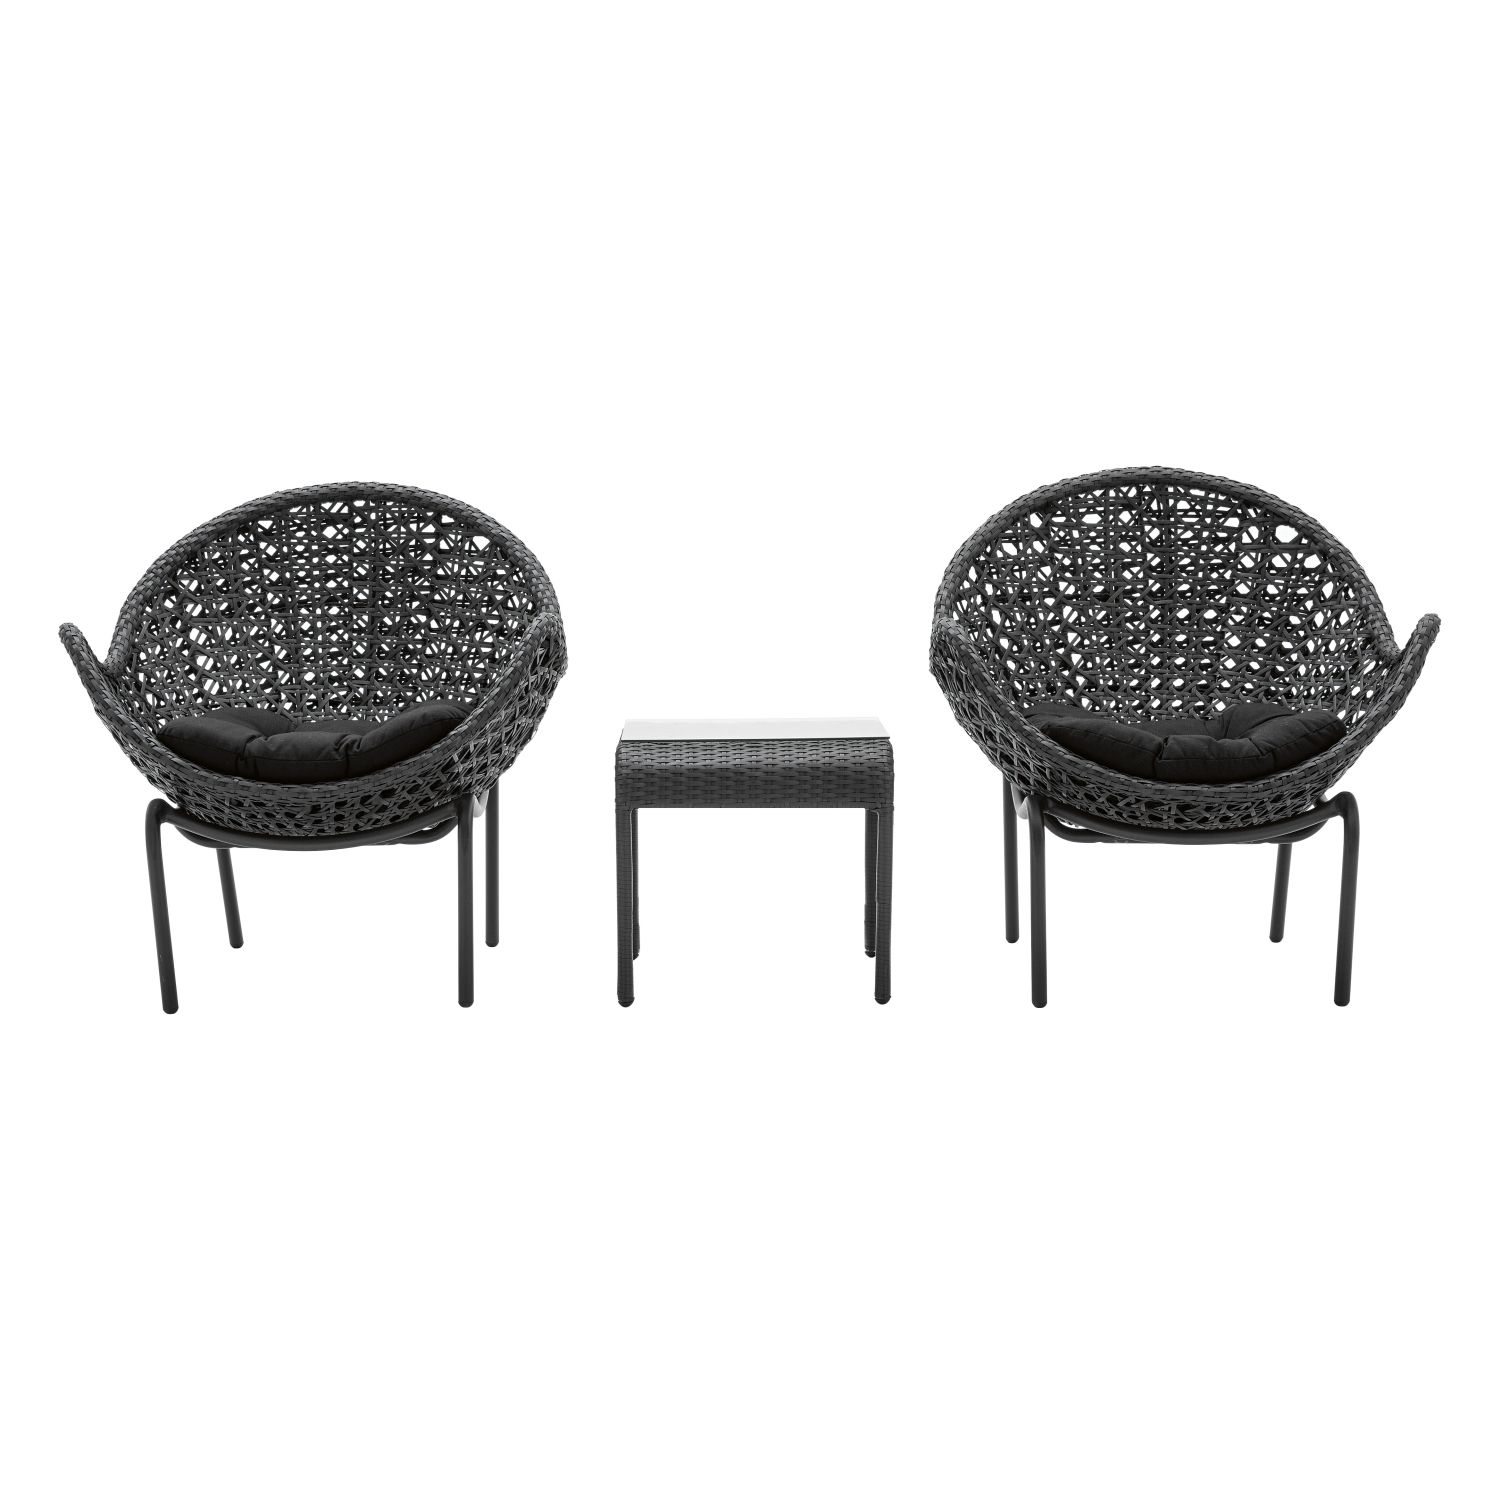 hugo 3 piece chatting set from domayne online 79920 - Garden Furniture 3 Piece